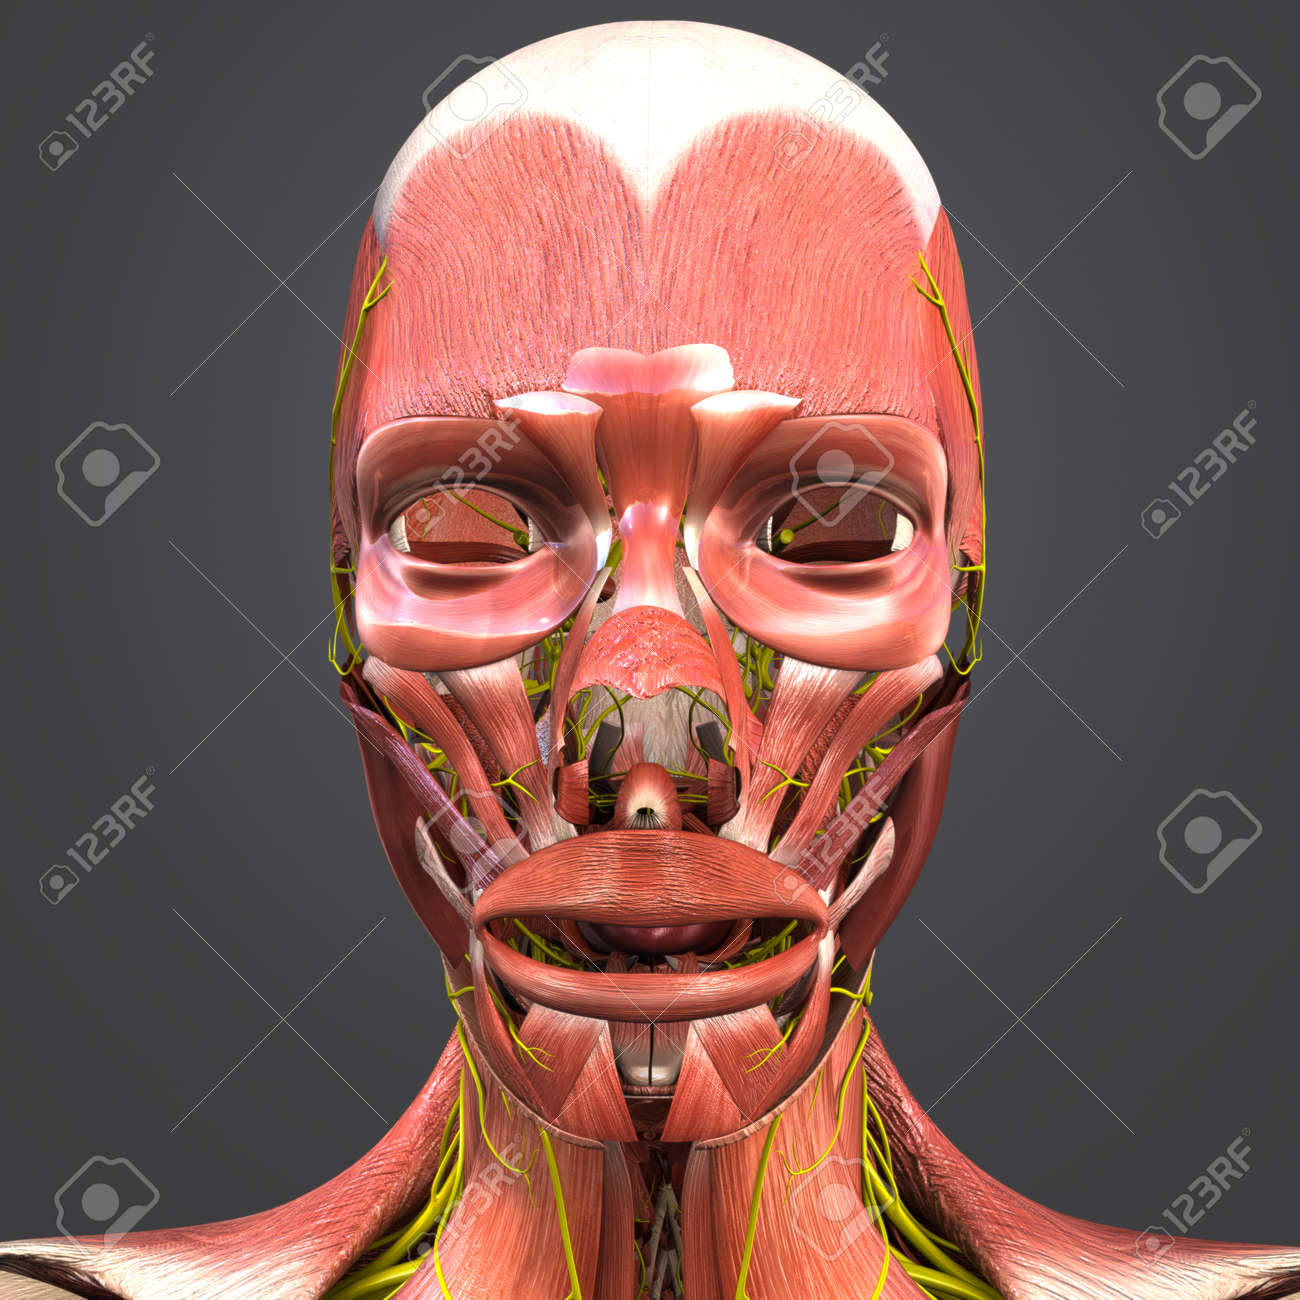 Facial Muscles Anatomy With Nerves Stock Photo, Picture And Royalty ...